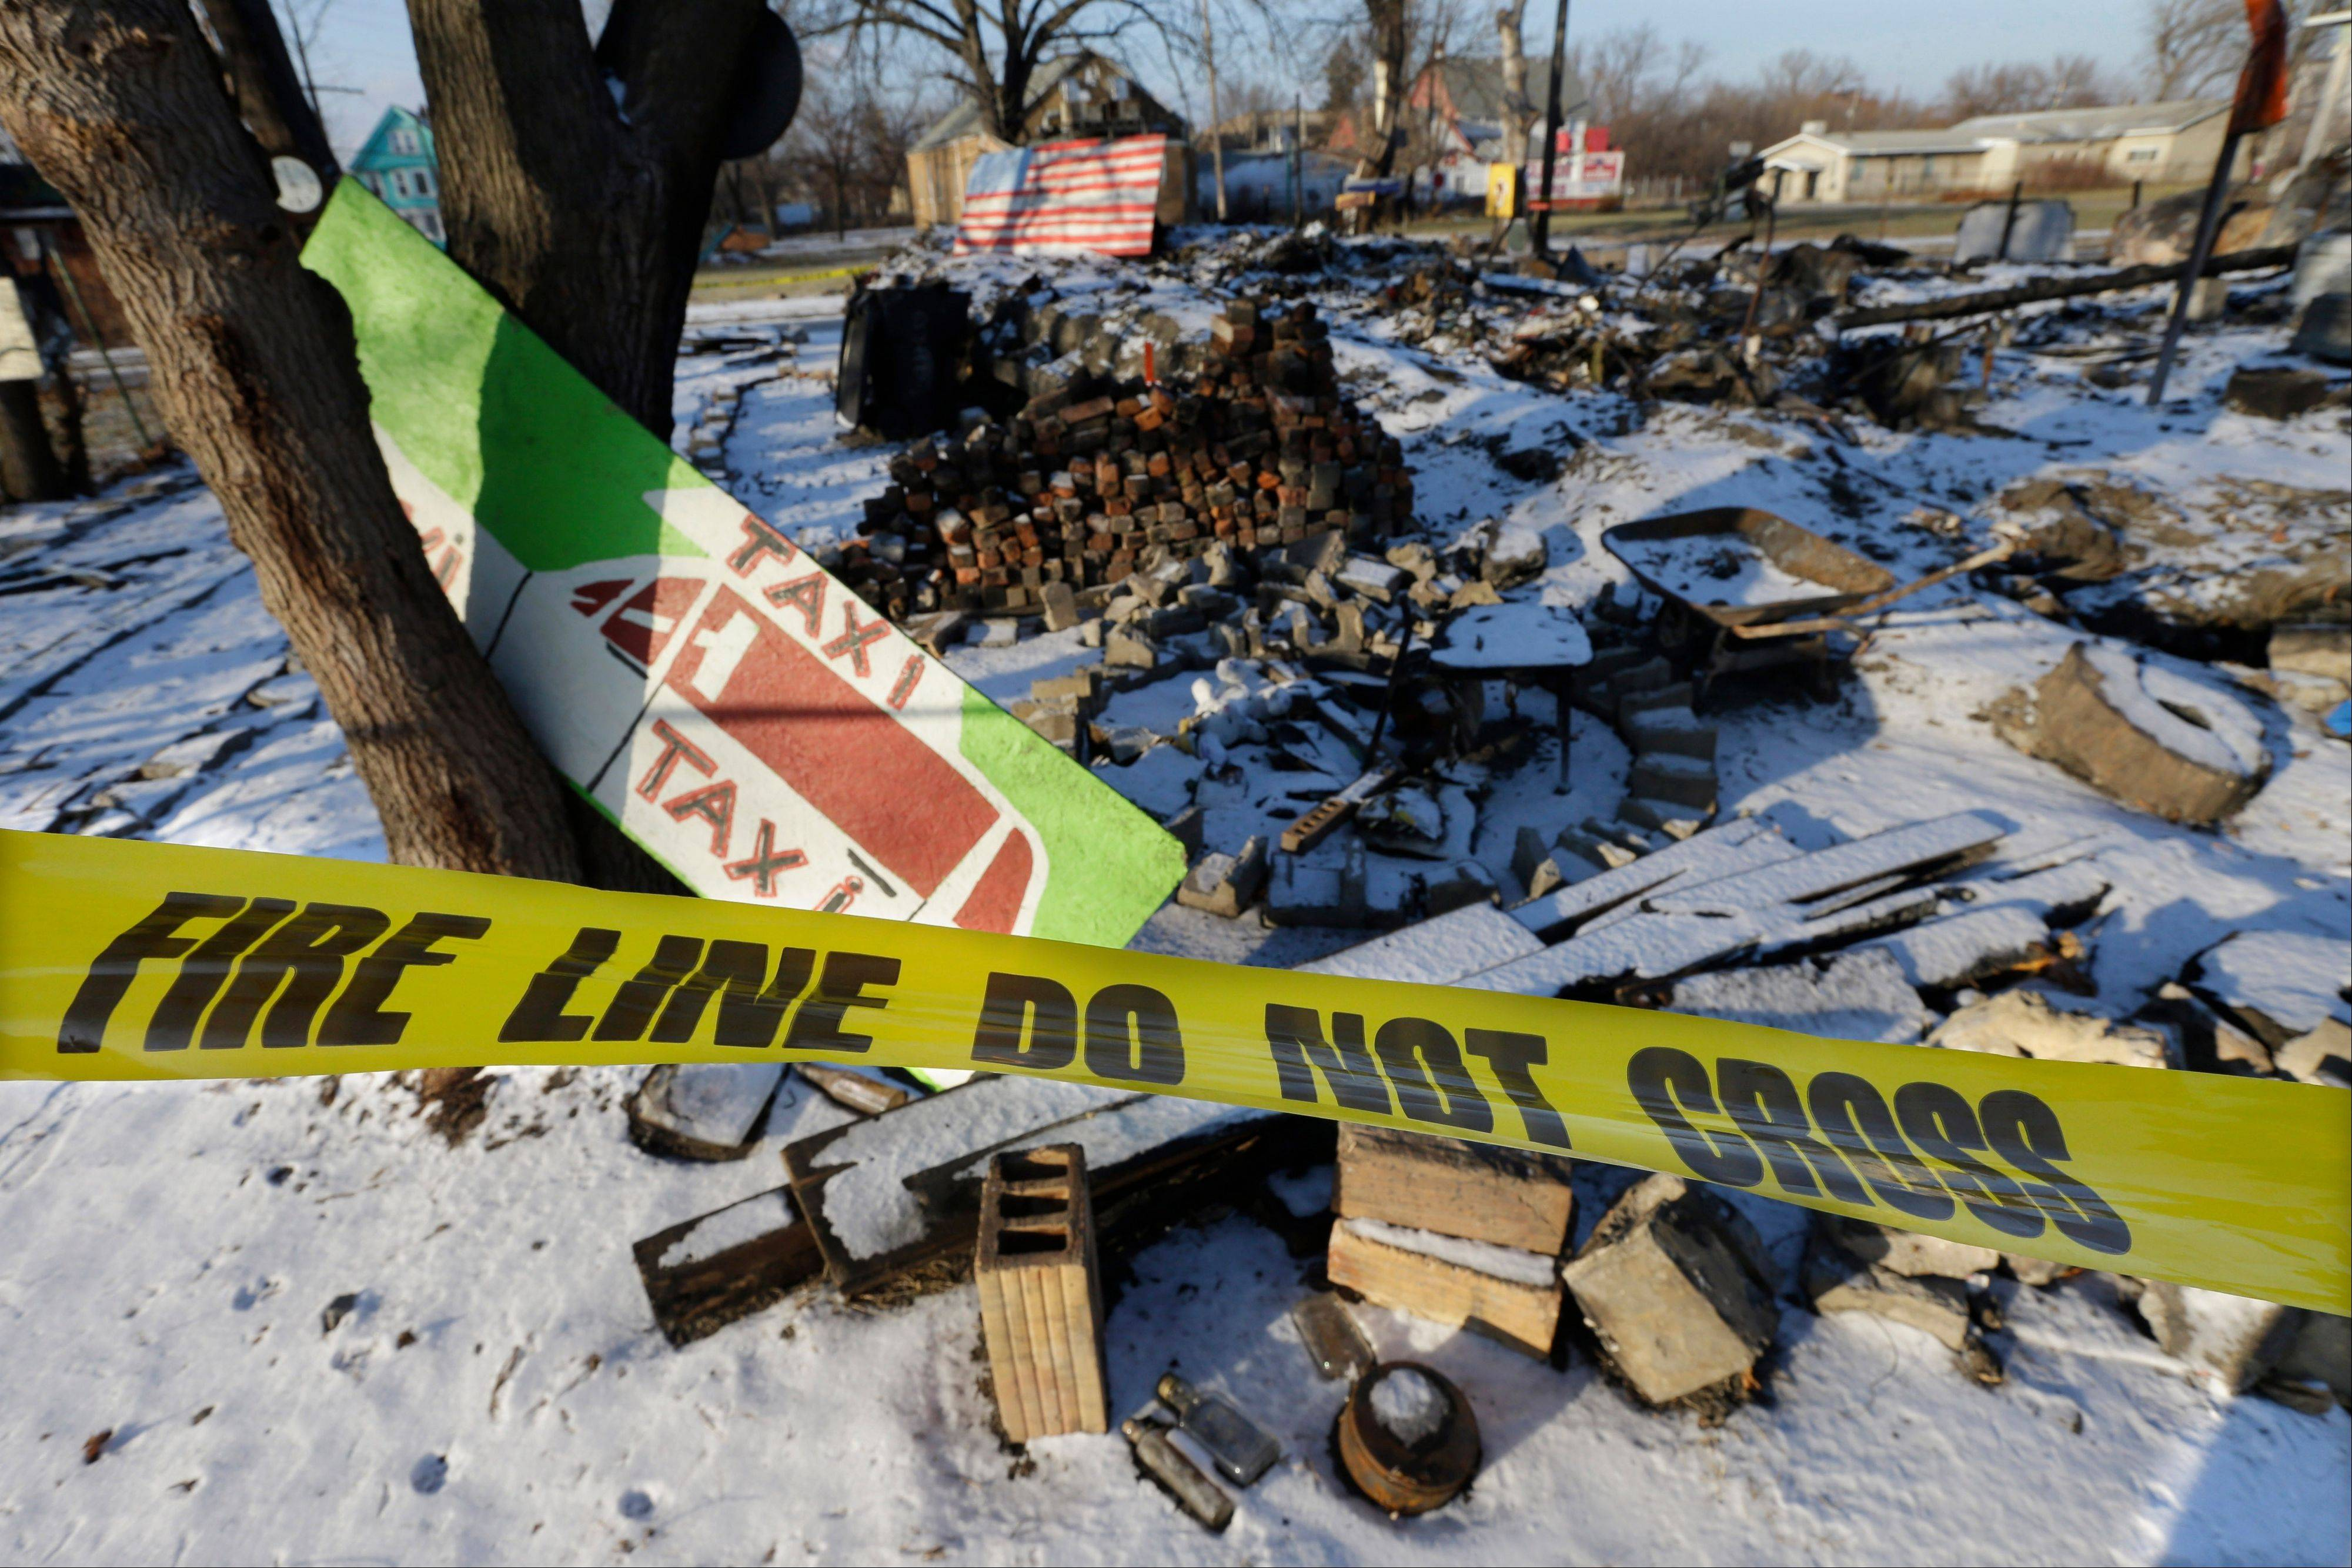 Fire tape surrounds the aftermath of the fire at the House of Soul at Detroit�s Heidelberg Project. There have been at least eight fires since early May, leading to questions about who might be targeting the installation and why they want to burn it down. Founder and artistic director Tyree Guyton and his compatriots vow to carry on, make more art and overcome the assault on his vision, yet worry threatens the whimsy as the fires snuff out building after building.